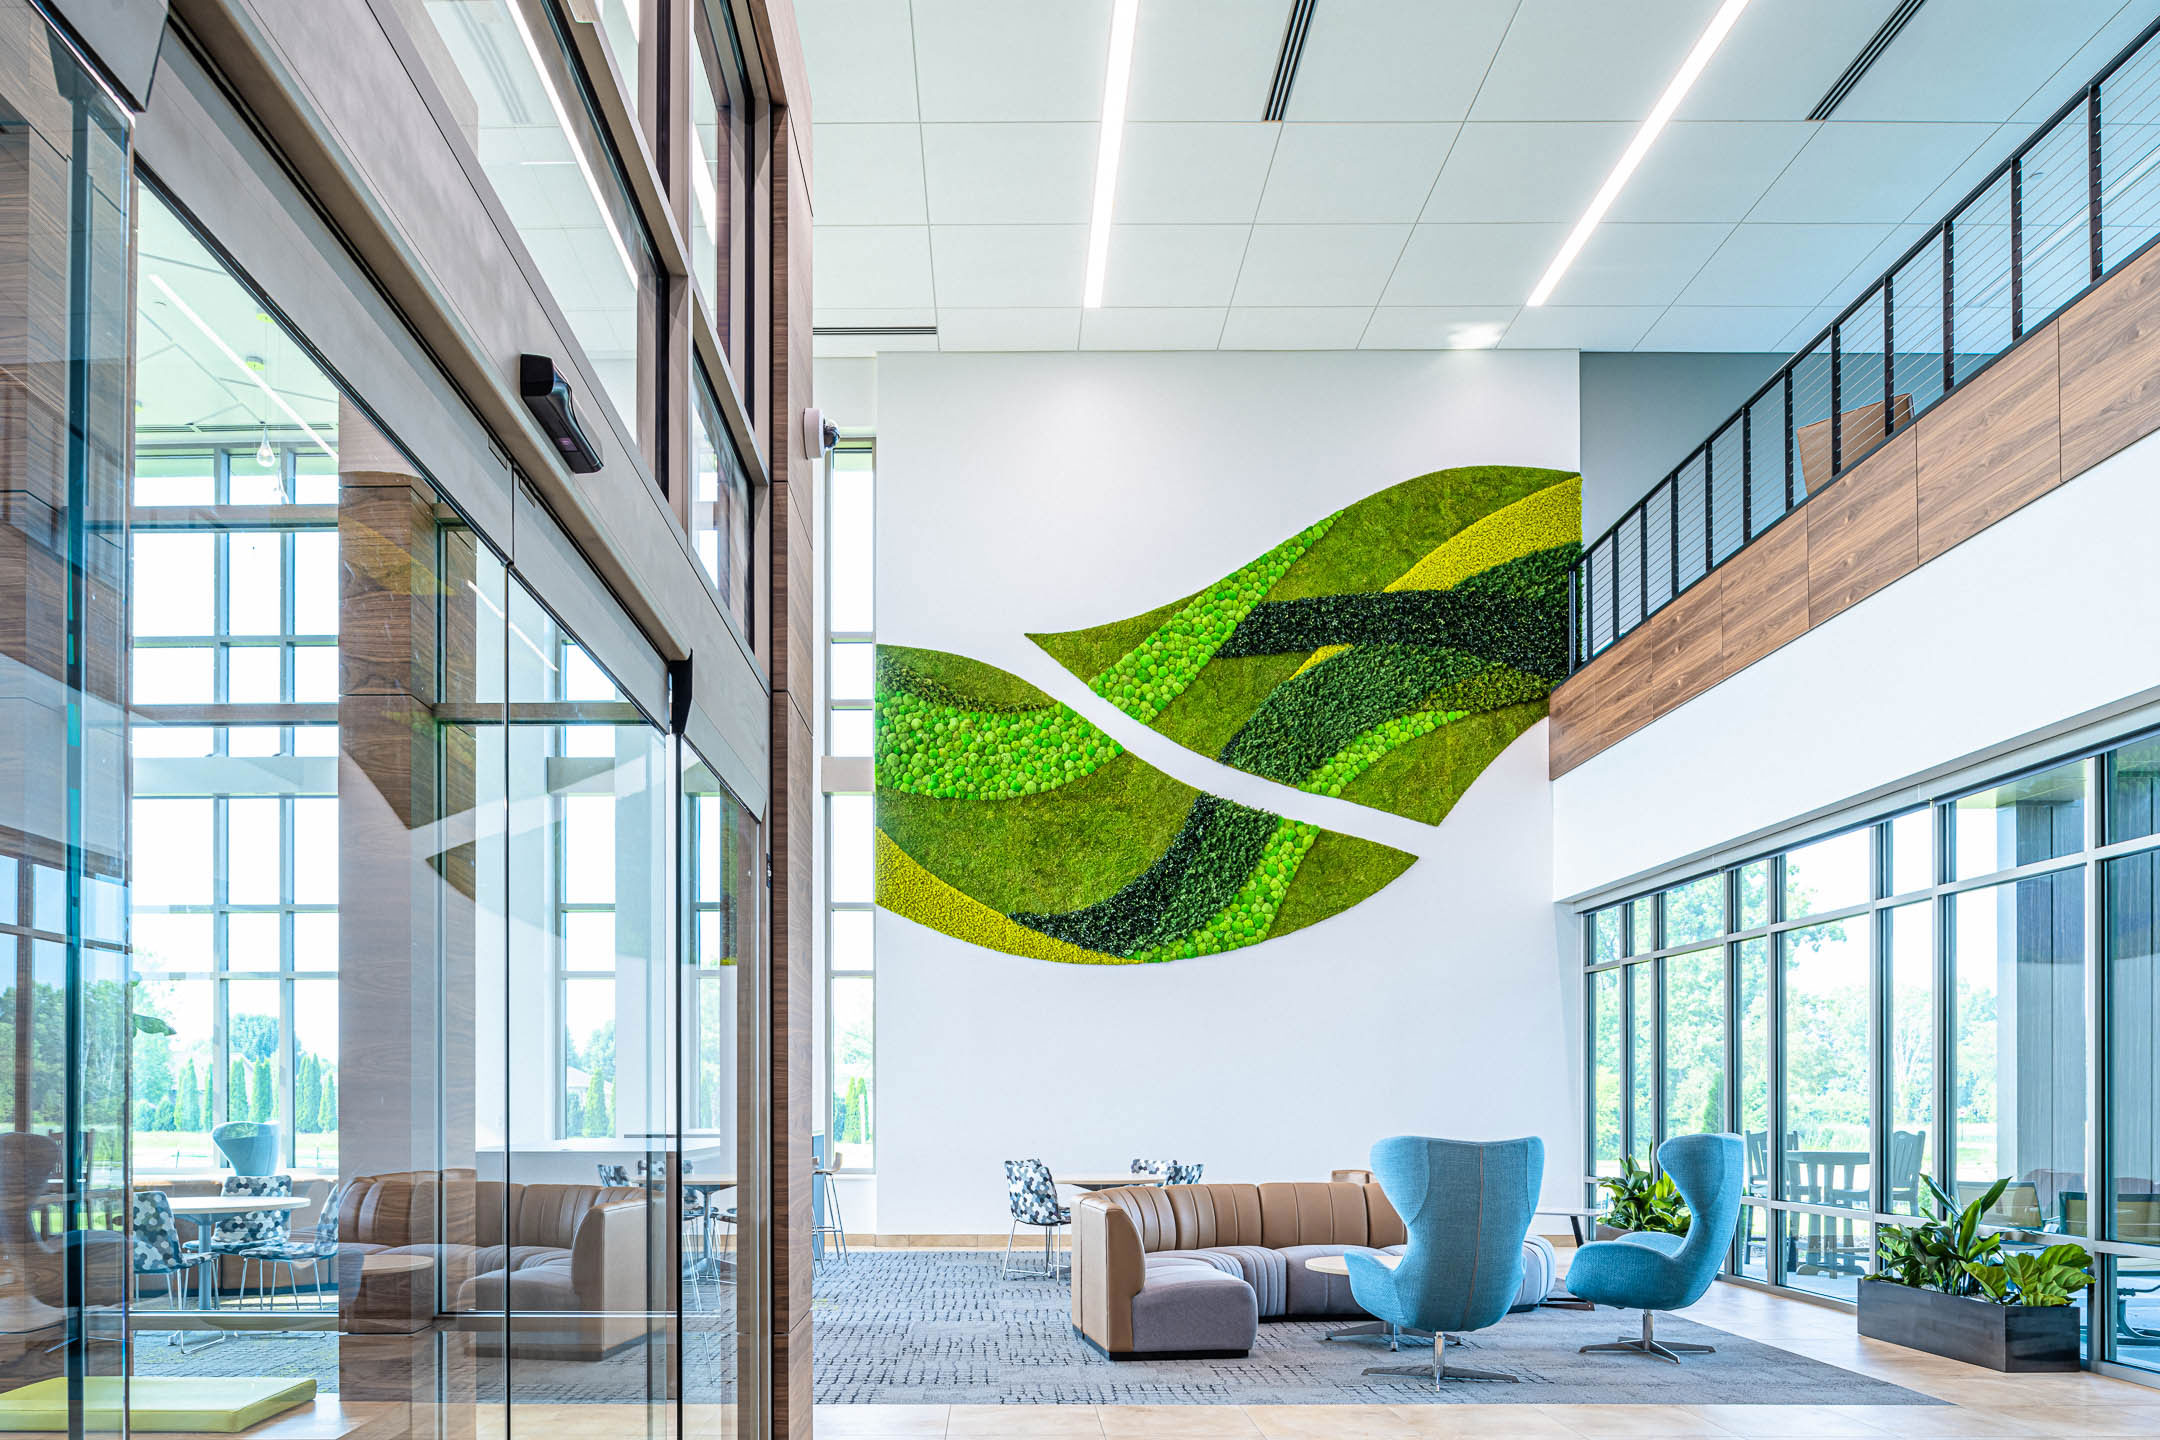 Lobby of Nature's Way new corporate office facility constructed by C.D. Smith Construction firm